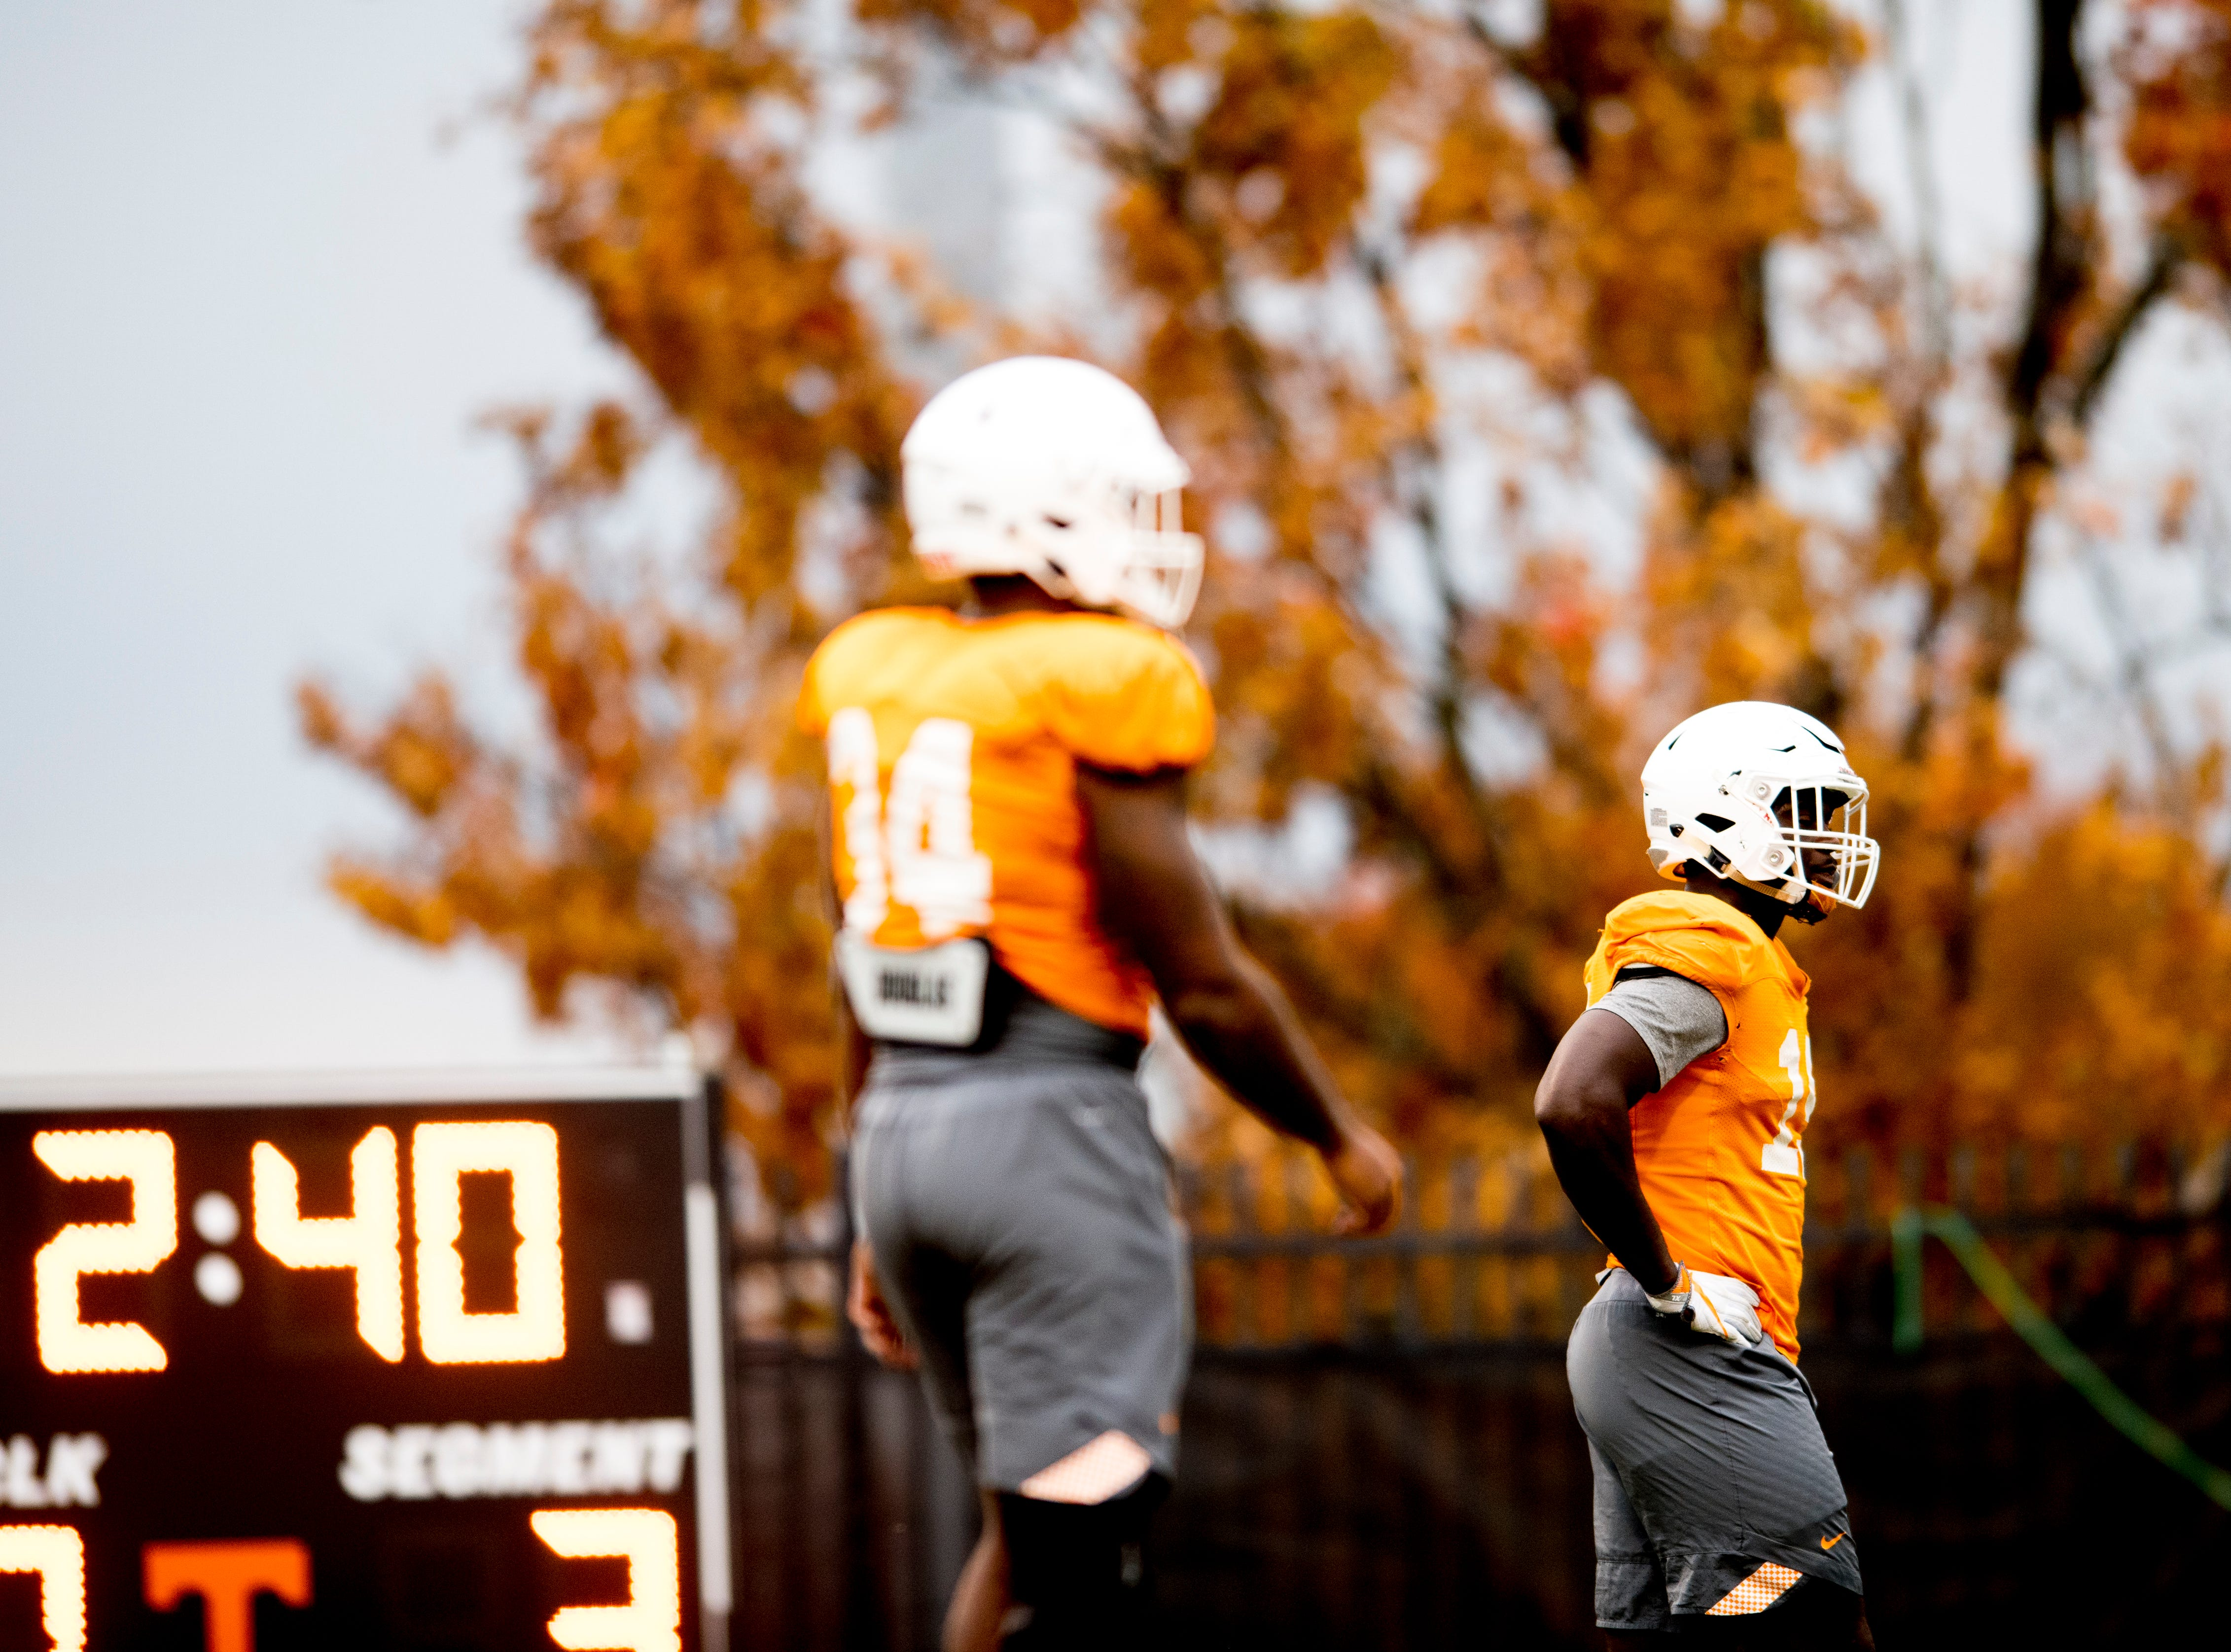 Tennessee linebacker Darrell Taylor (19) and Tennessee linebacker Darrin Kirkland Jr. (34) walk on the field during Tennessee fall football practice at Haslam Field in Knoxville, Tennessee on Wednesday, November 7, 2018.